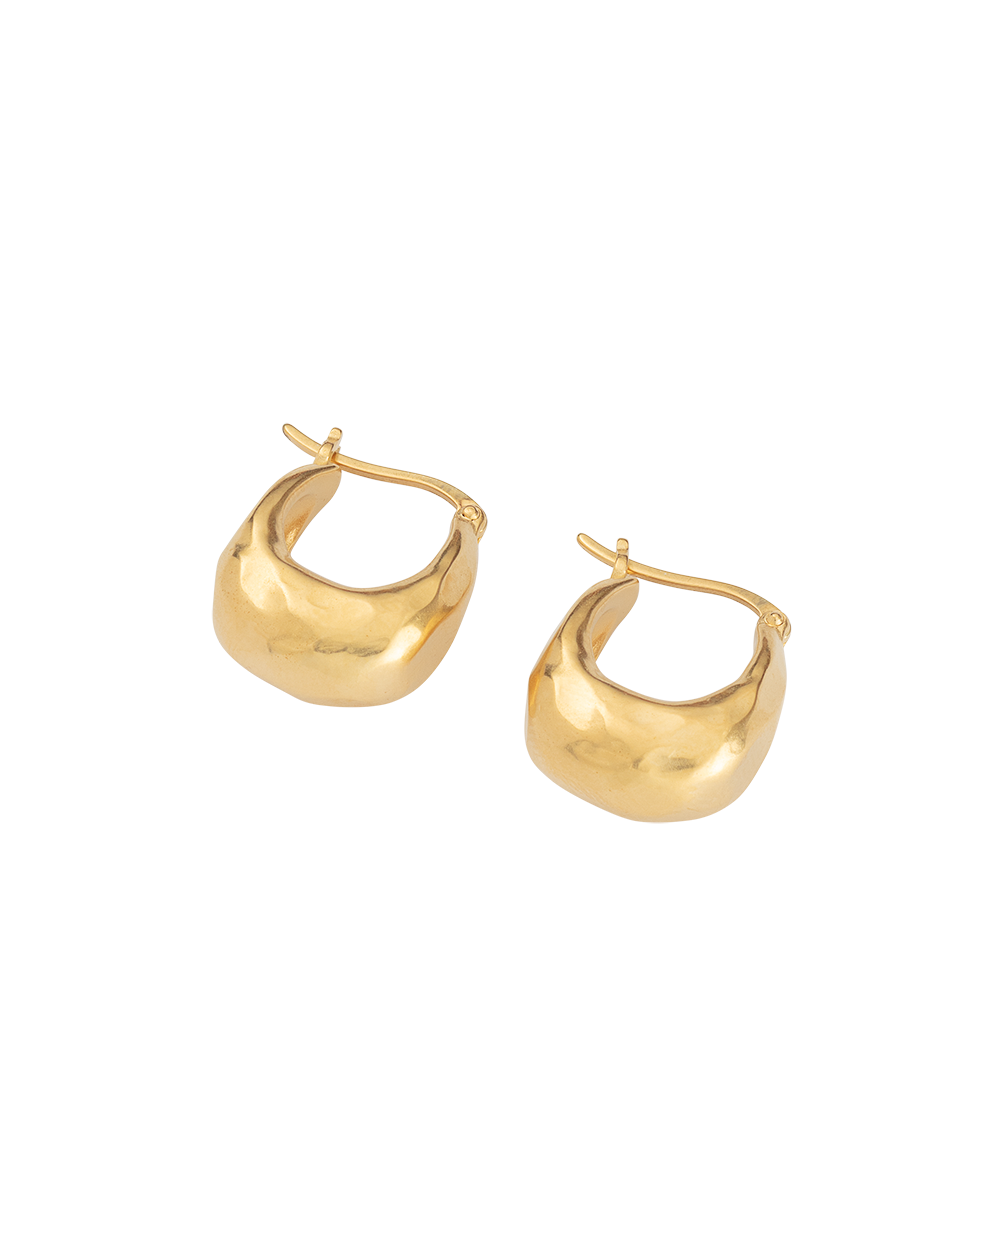 ESSENCE HOOPS SMALL (18K-GOLD-PLATED) - SIDE